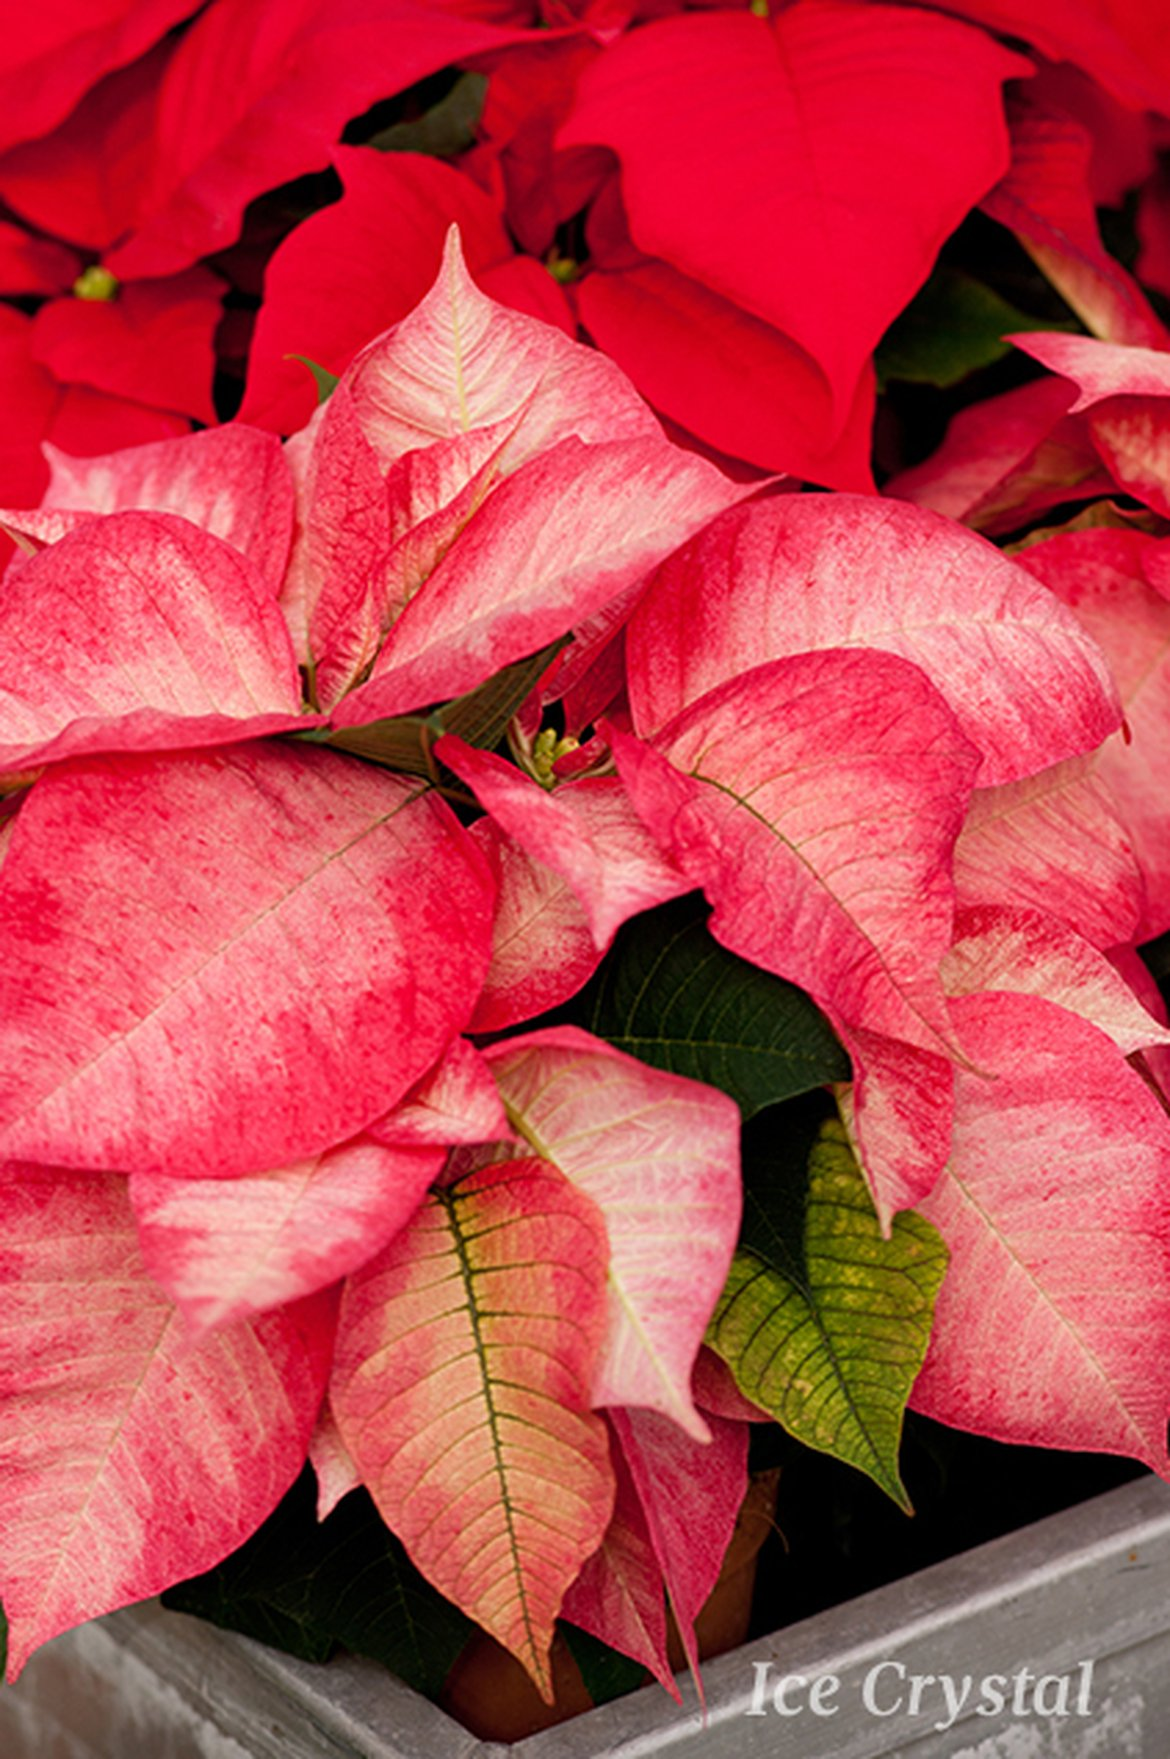 Poinsettia - Ice Crystal